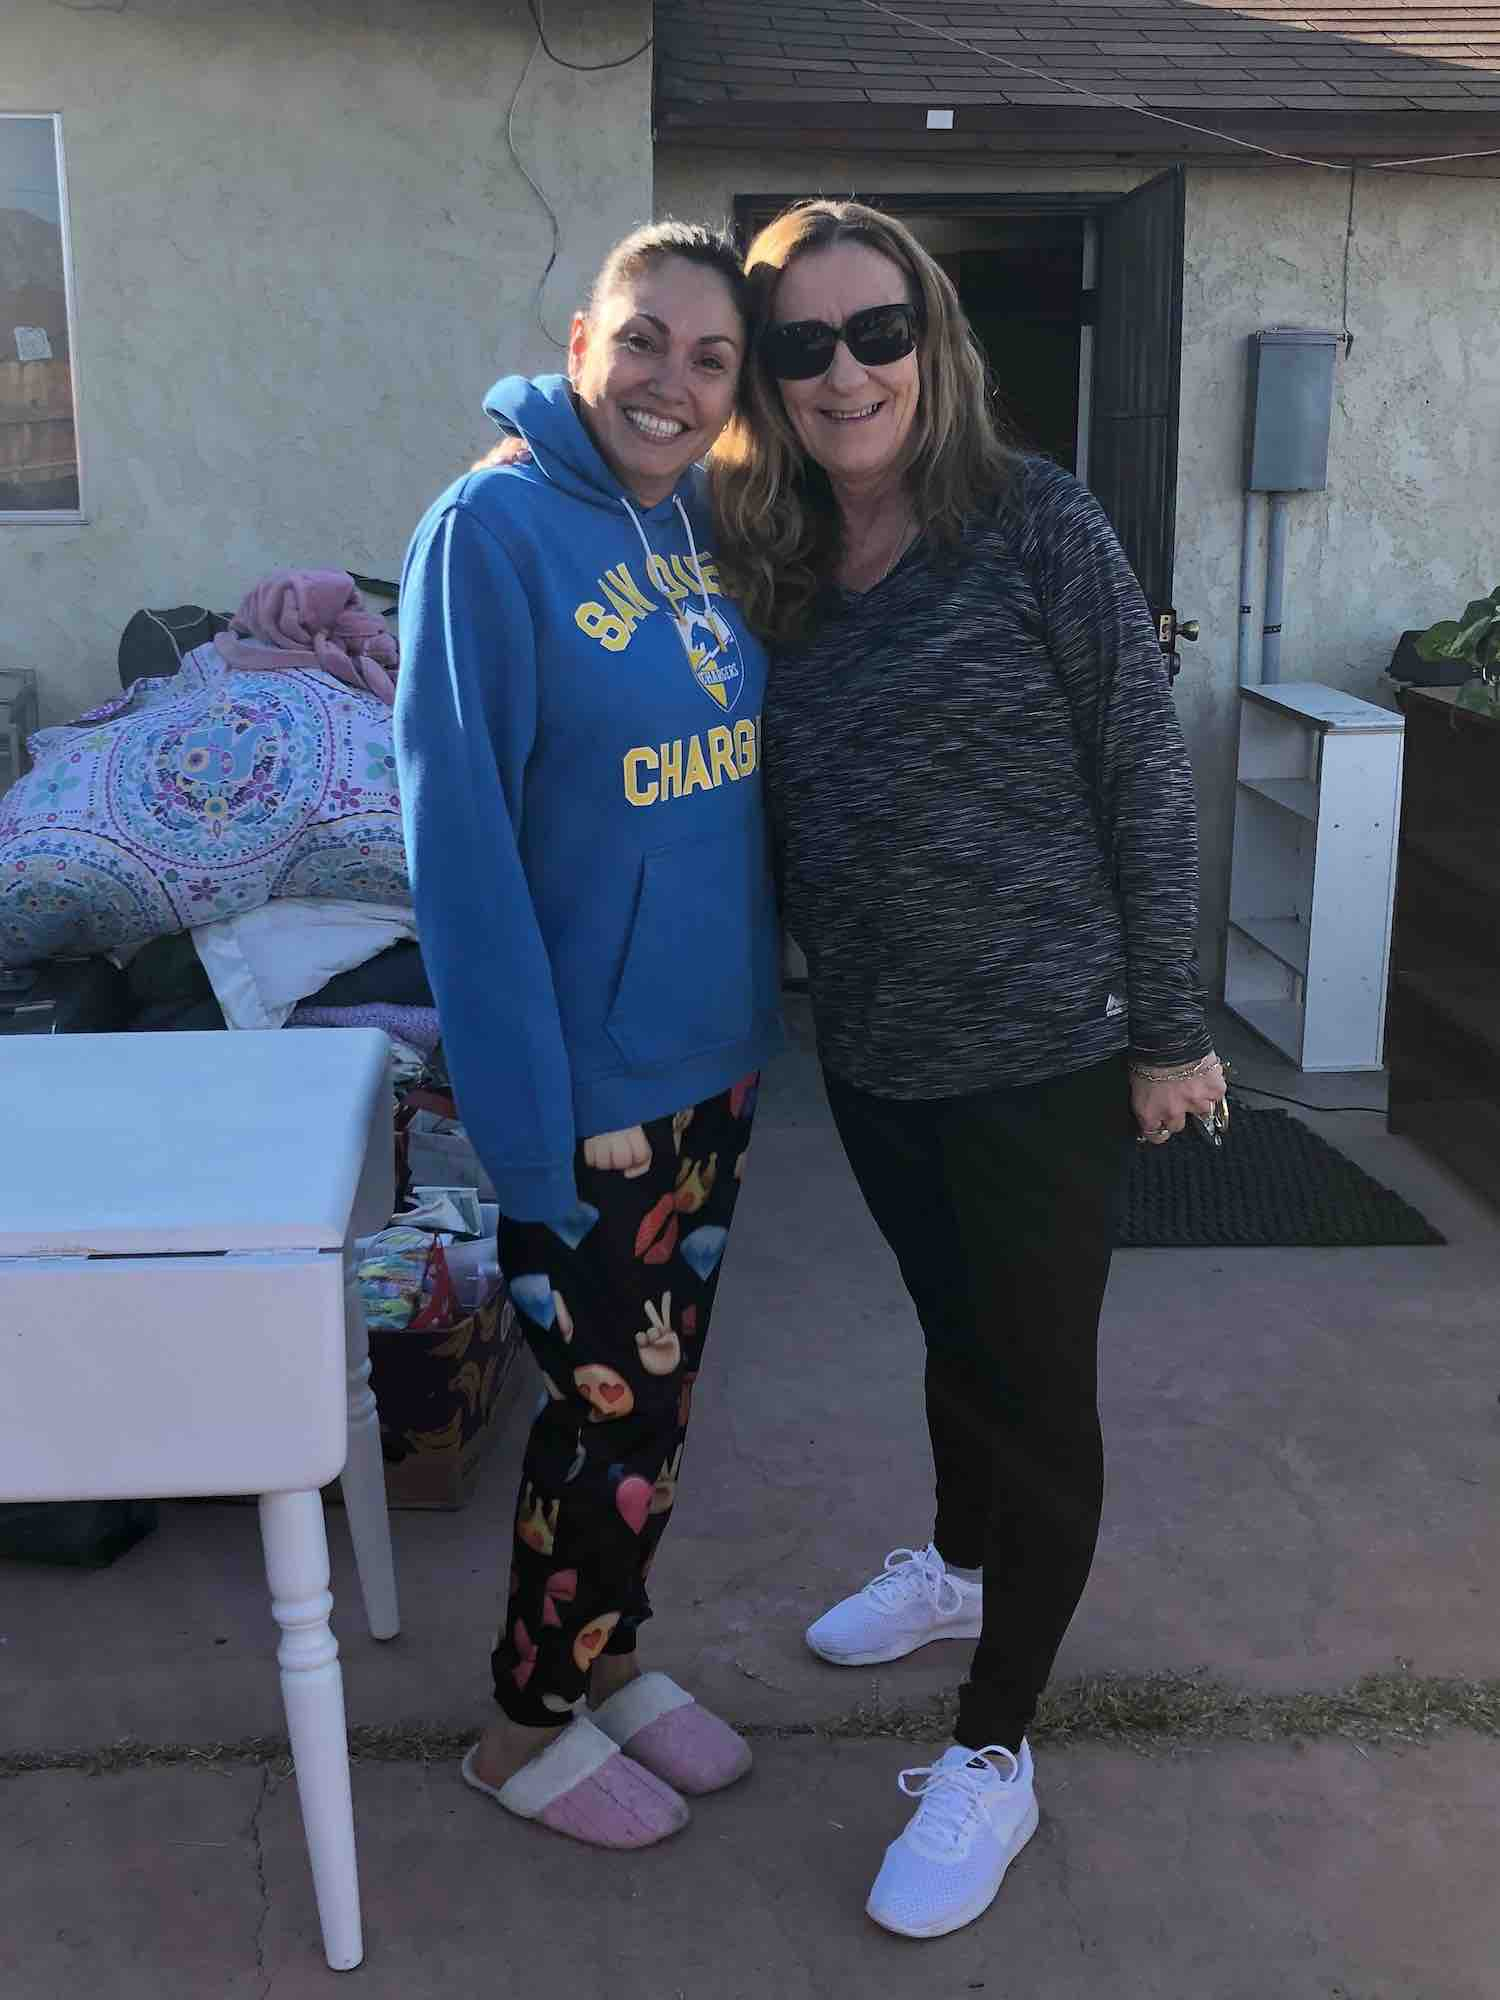 Cynthia was so excited when I found my own place. I am so grateful to the Steps 4 Life Program. Thank you!!